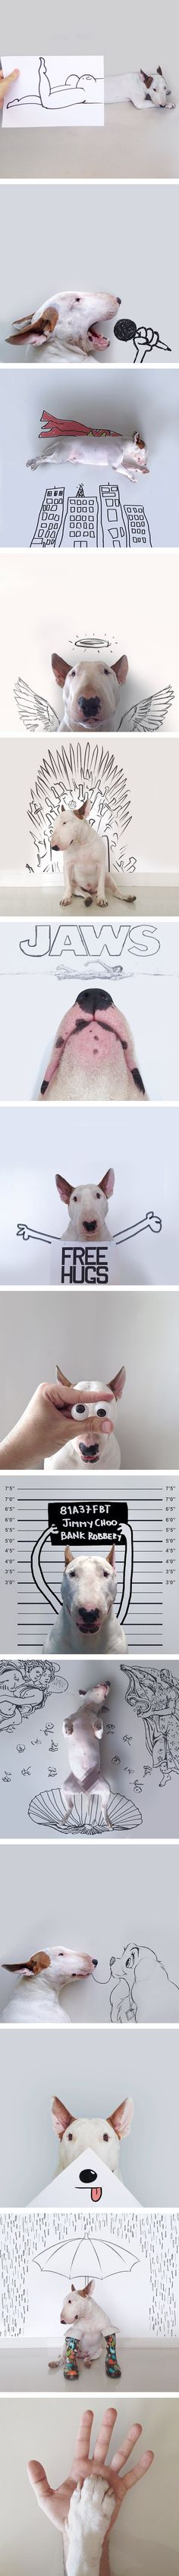 Dog Owner Creates Funny Illustrations With His Bull Terrier And They Are Awesome Tap the link for an awesome selection cat and kitten products for your feline companion! Cute Puppies, Cute Dogs, Dogs And Puppies, Doggies, Animals And Pets, Funny Animals, Cute Animals, Animal Pictures, Funny Pictures